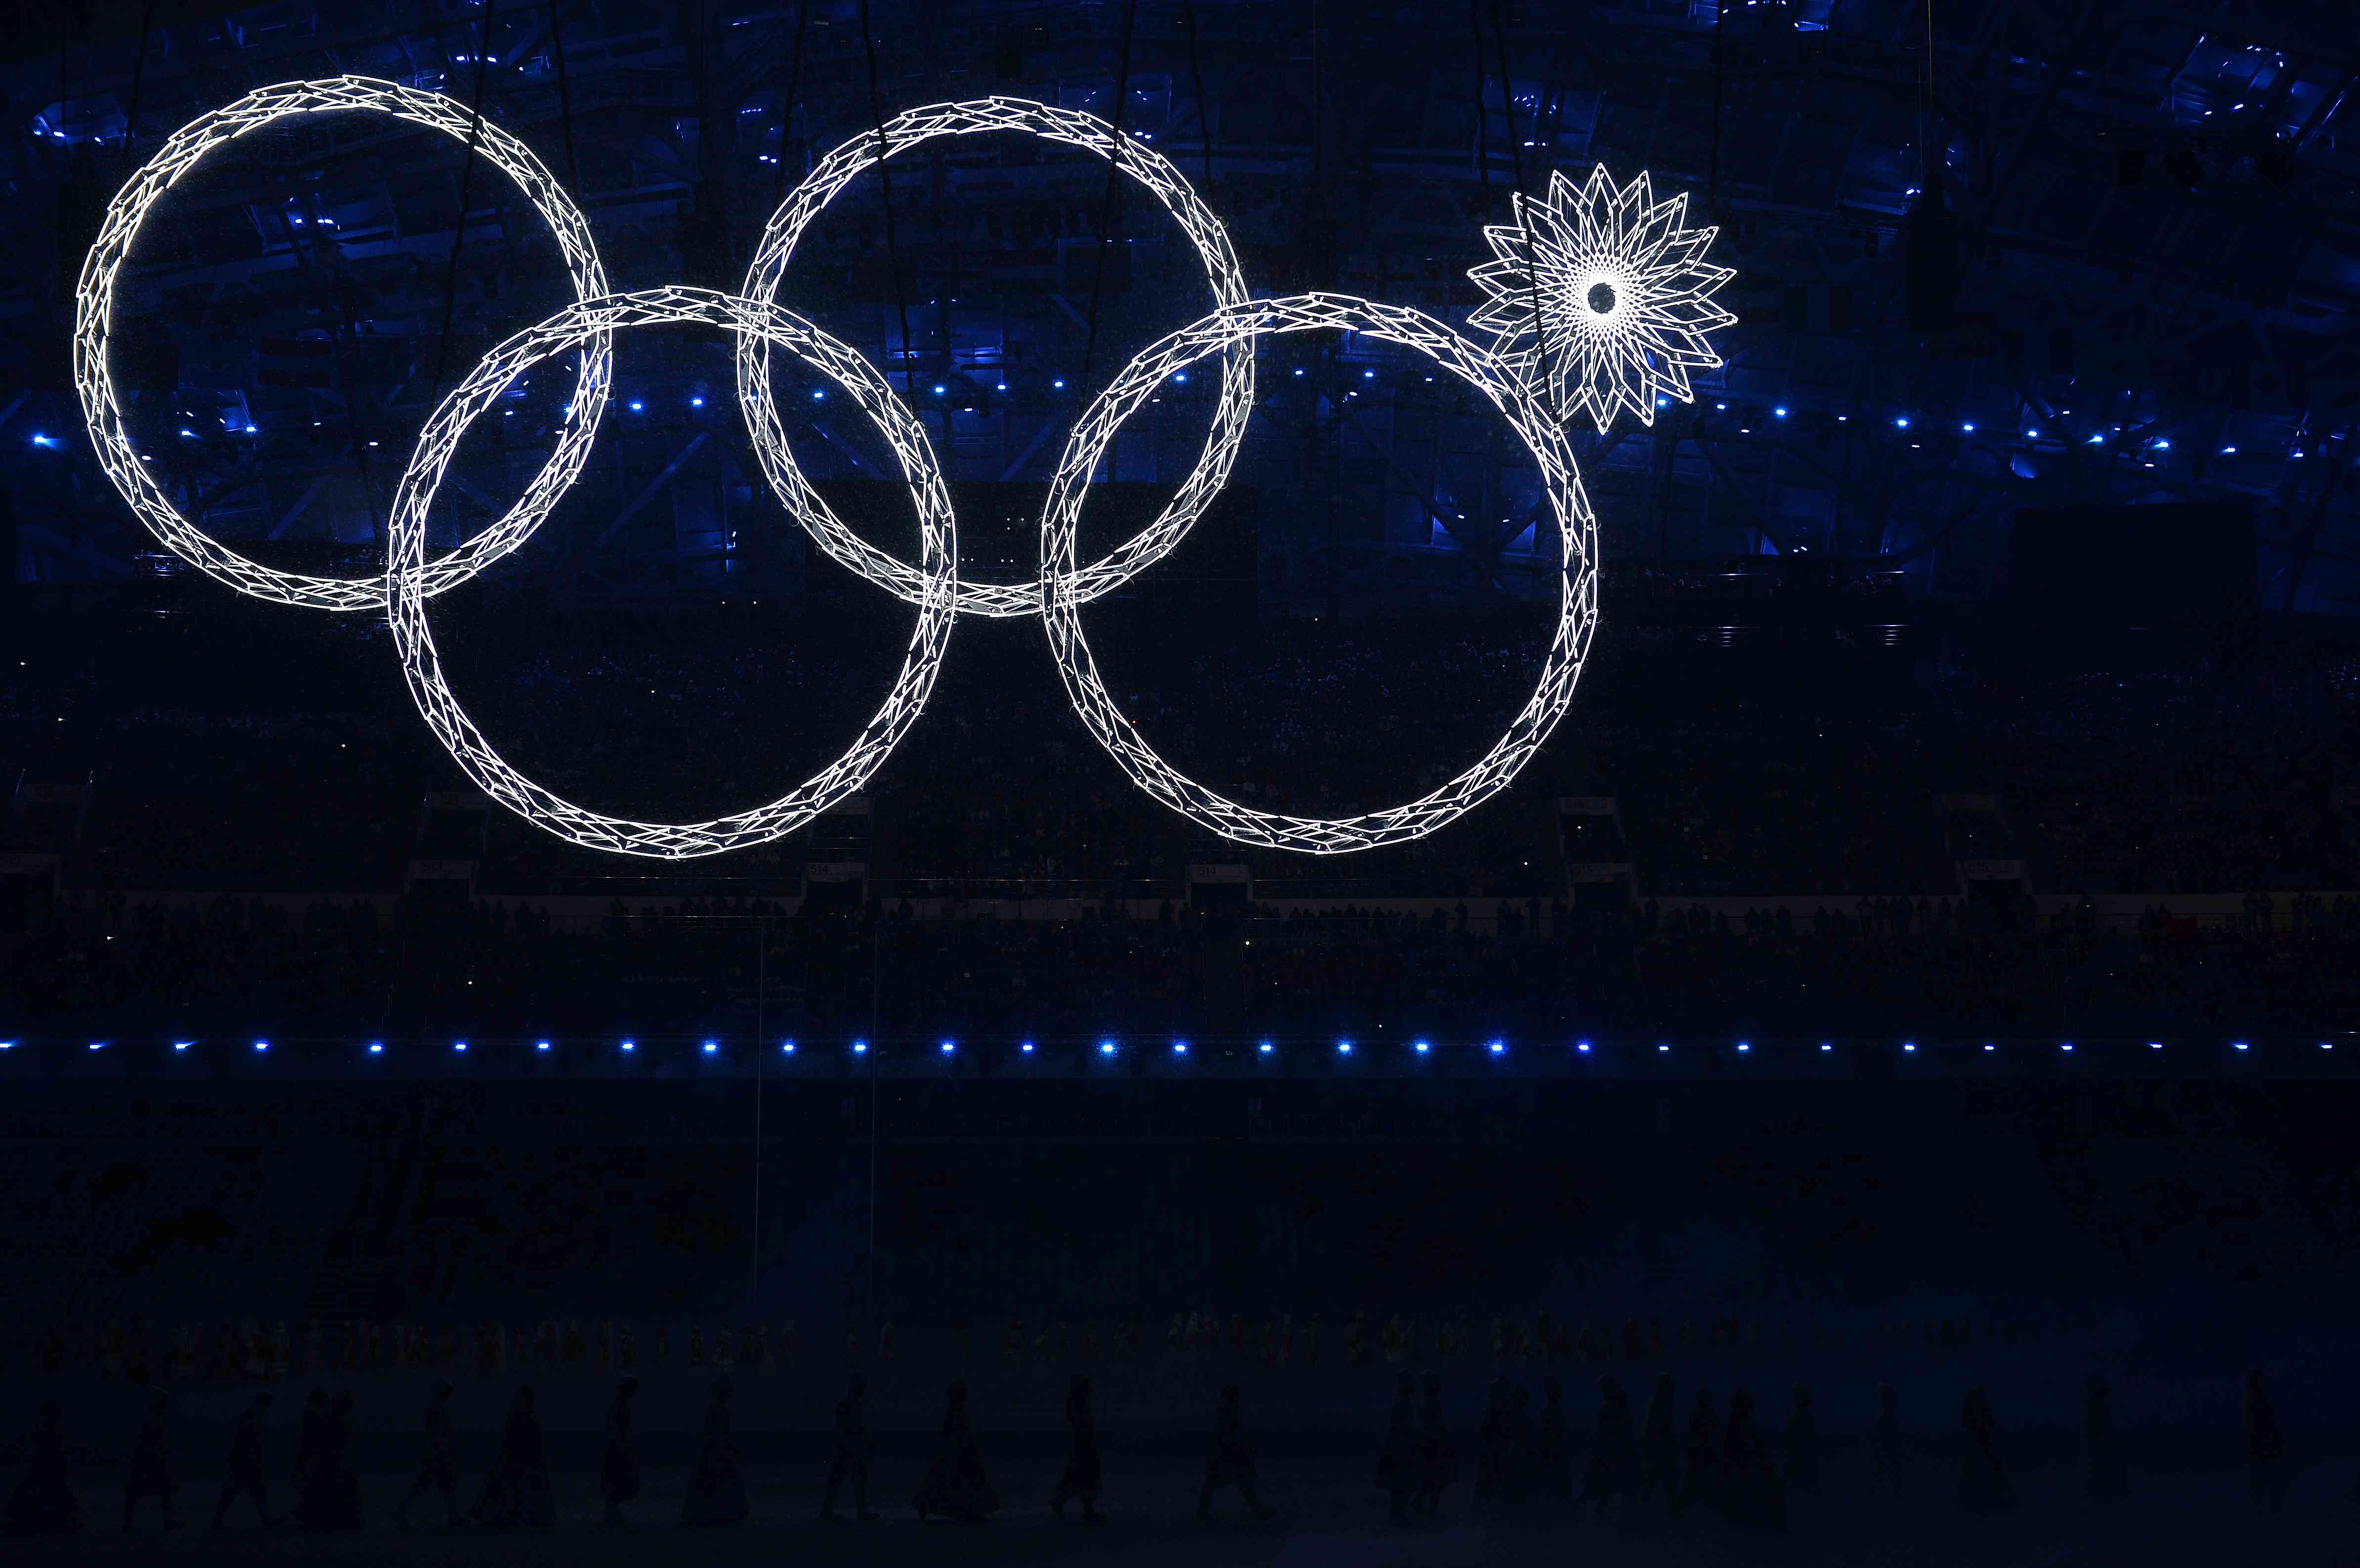 The Olympic rings in lights during the 2014 Opening Ceremony.